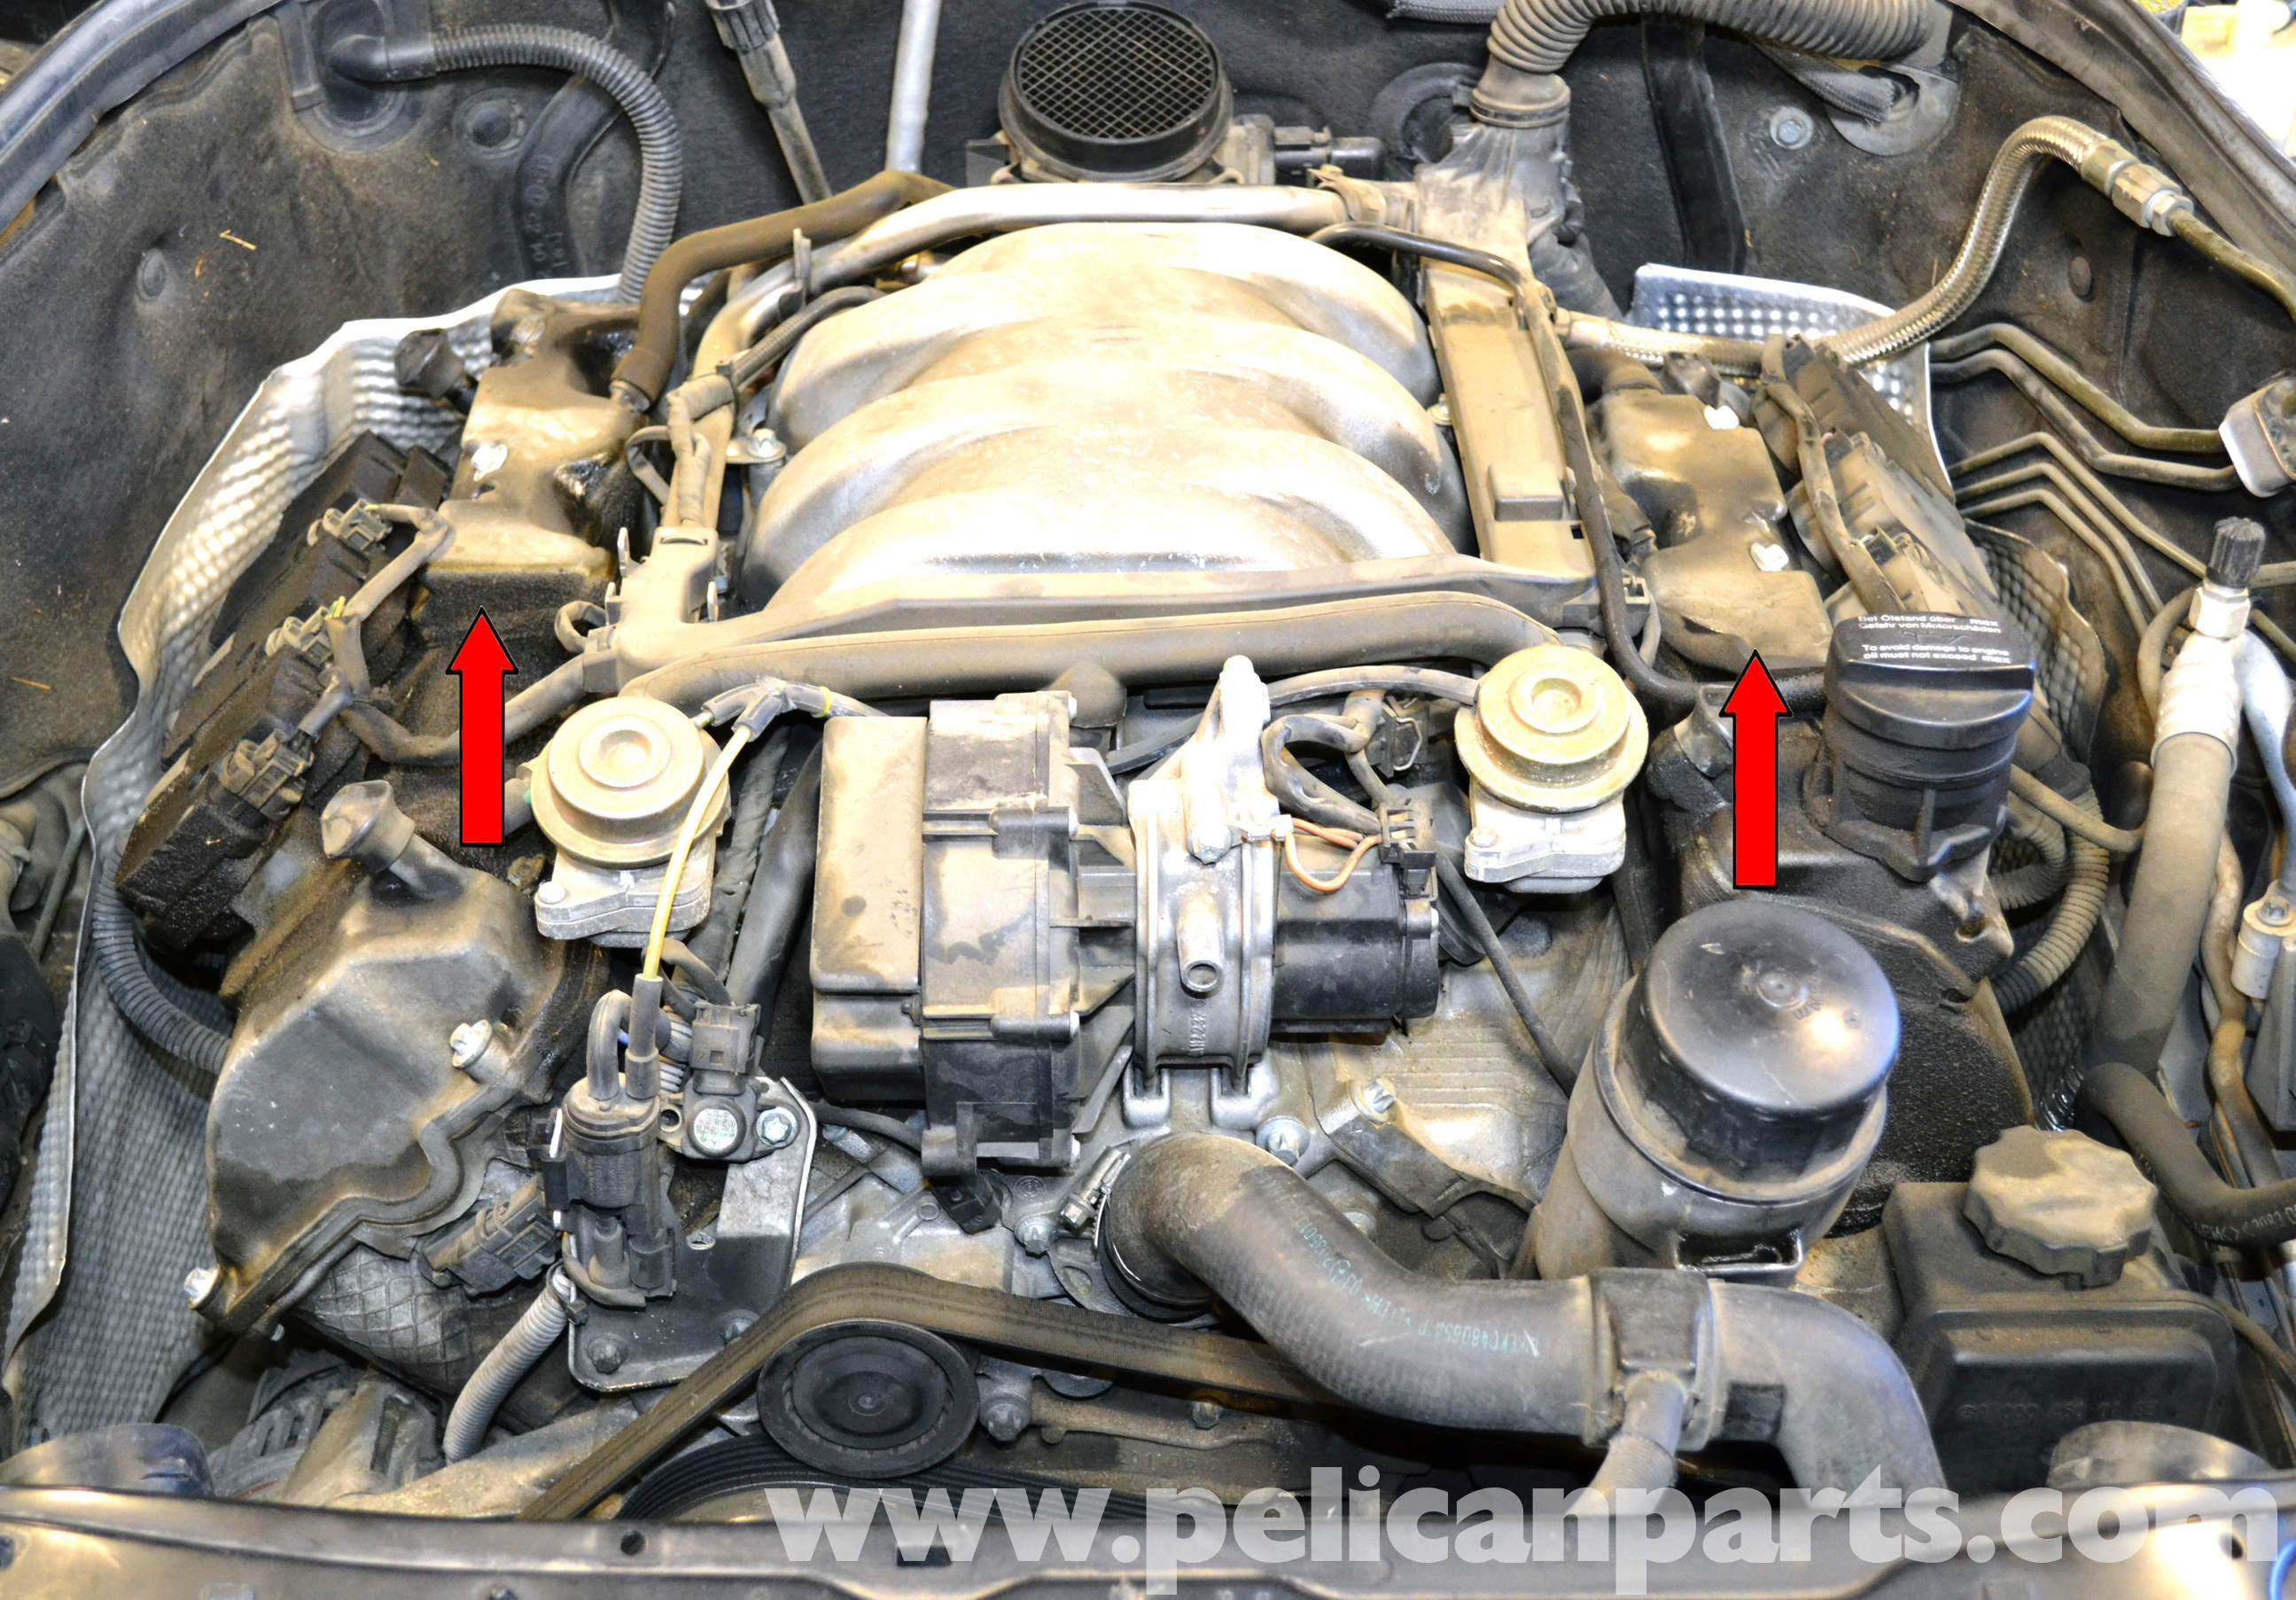 E420 Engine Diagram Another Wiring Diagrams 2001 Mercedes S430 Car Harness Easy Rules Of U2022 Rh Ideoder Co Uk 1995 Vizio A0